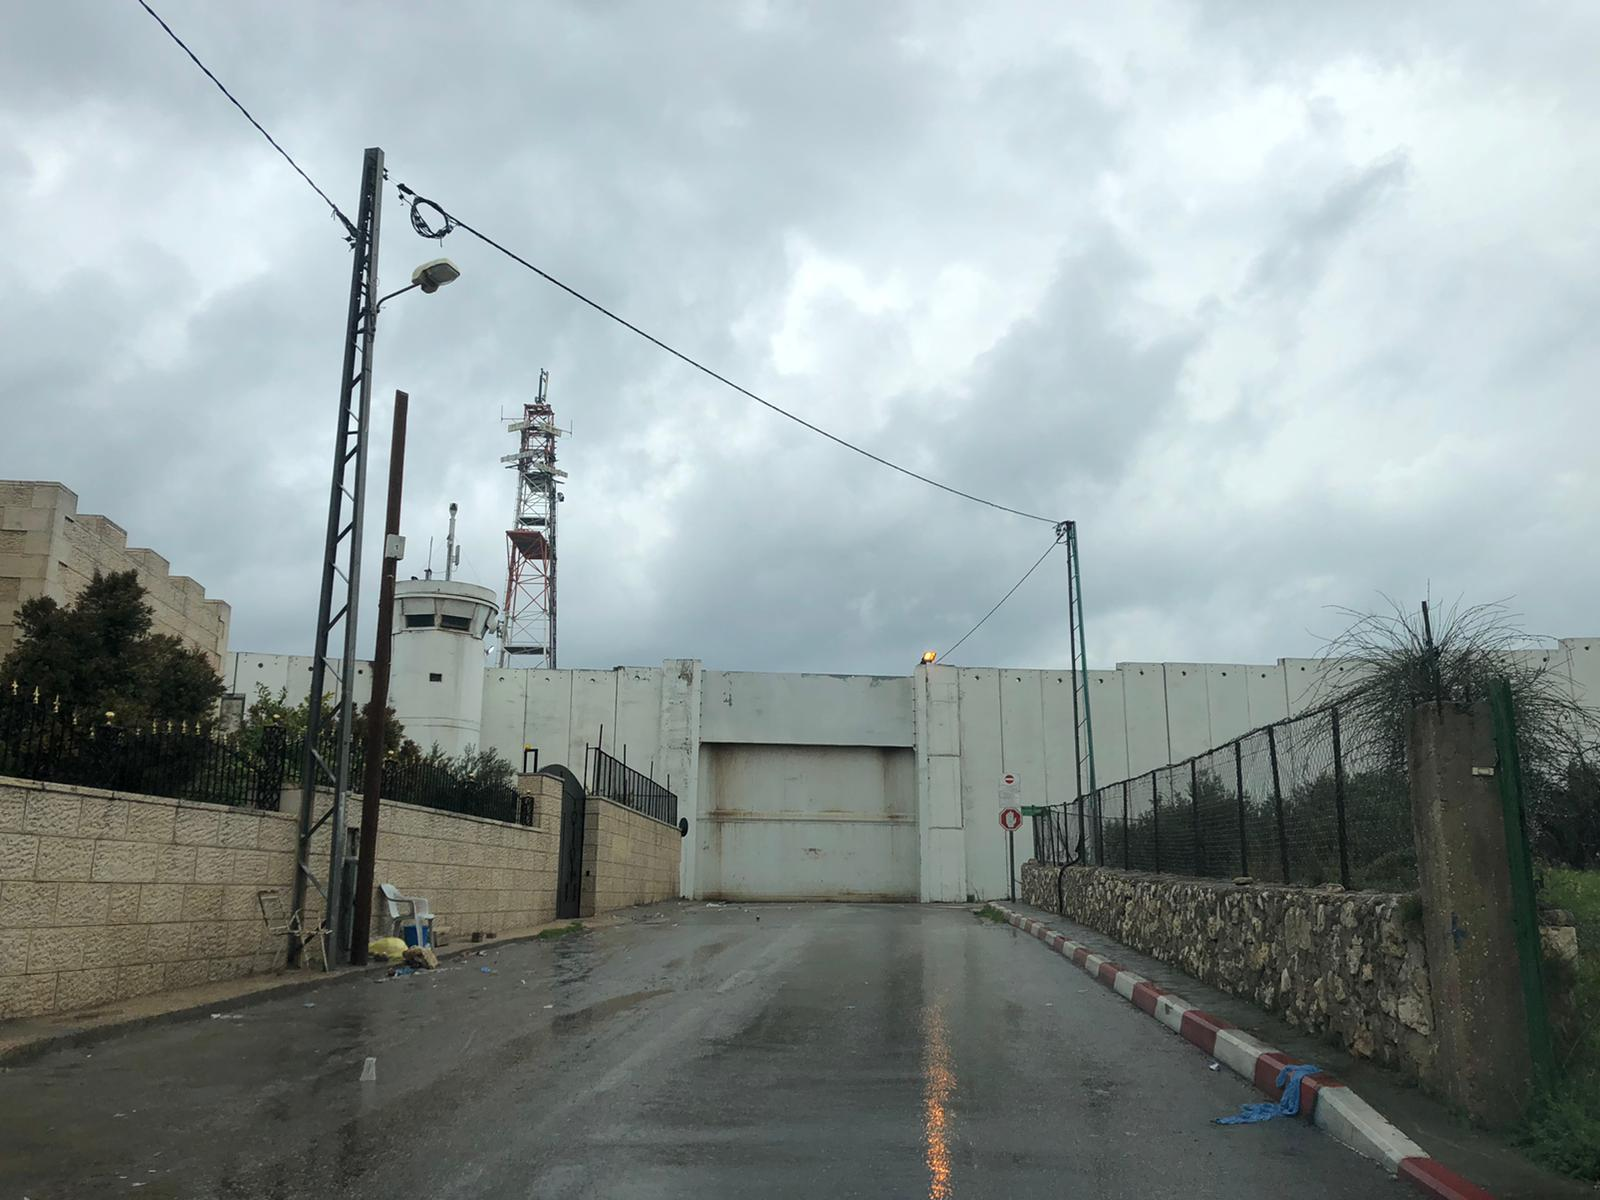 The imposing metal gate at Checkpoint 300, the main crossing point between Bethlehem and Jerusalem, is locked shut.